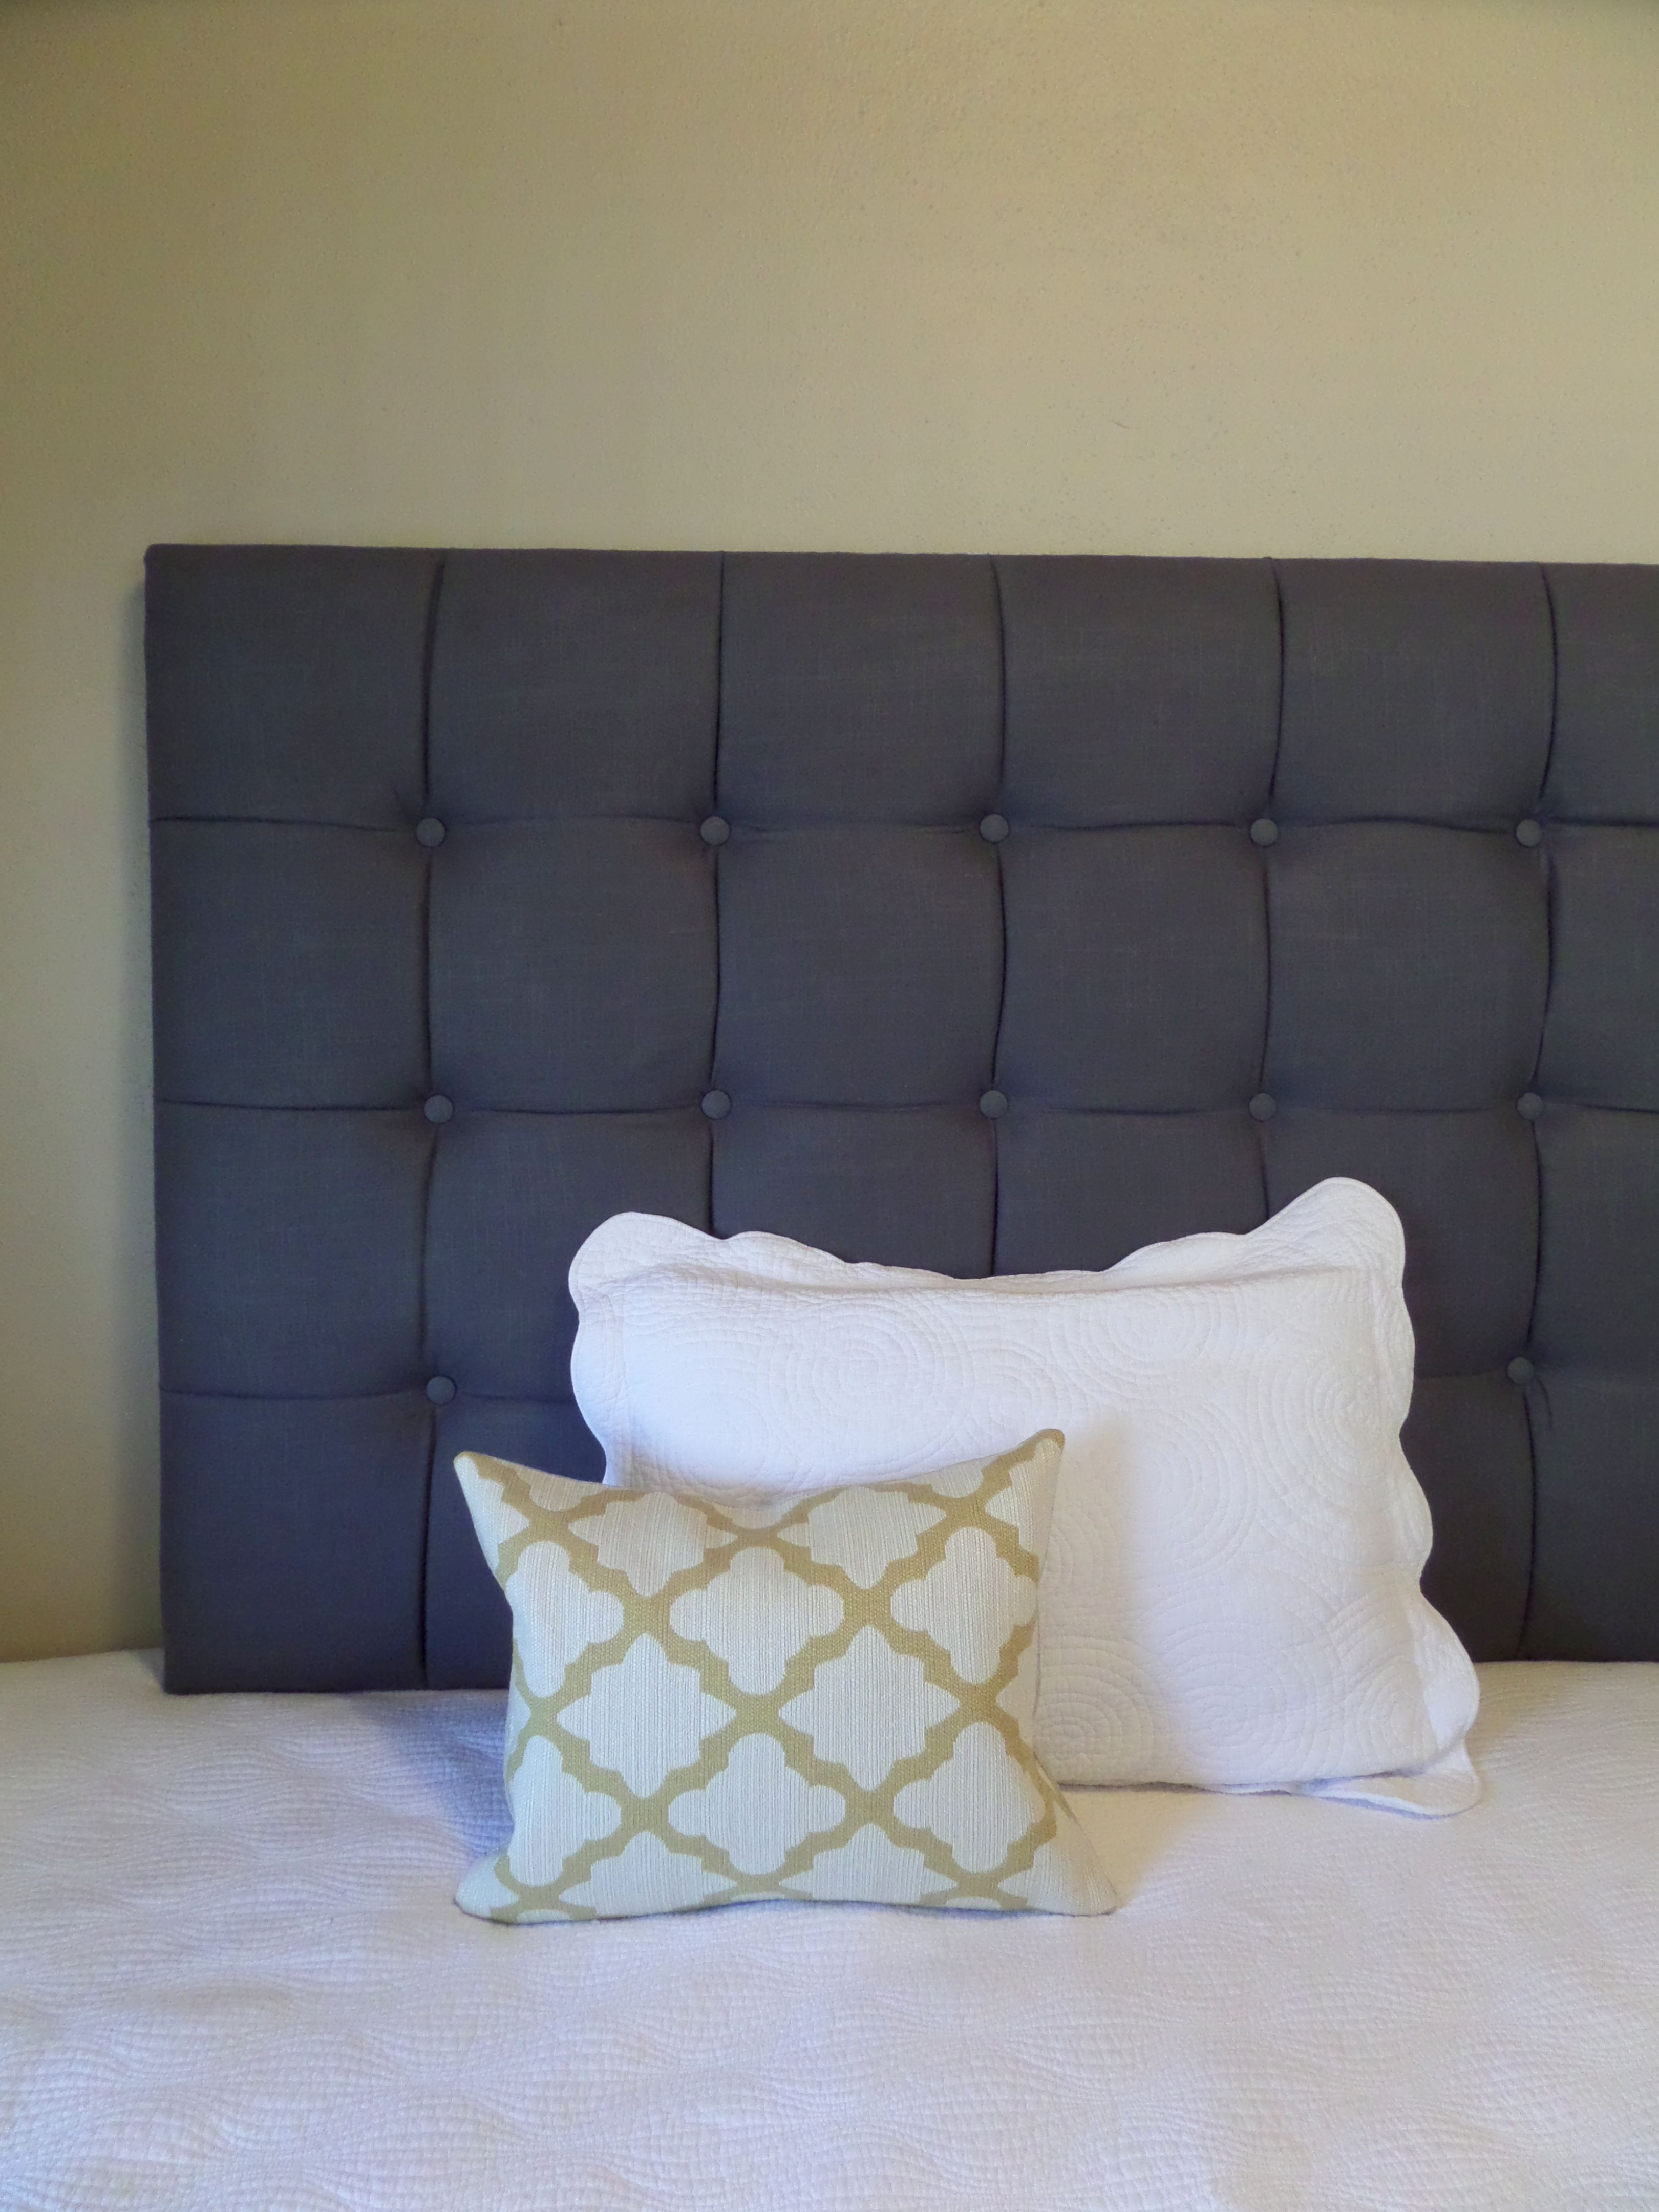 Extra tall king size tufted upholstered headboard charcoal gray